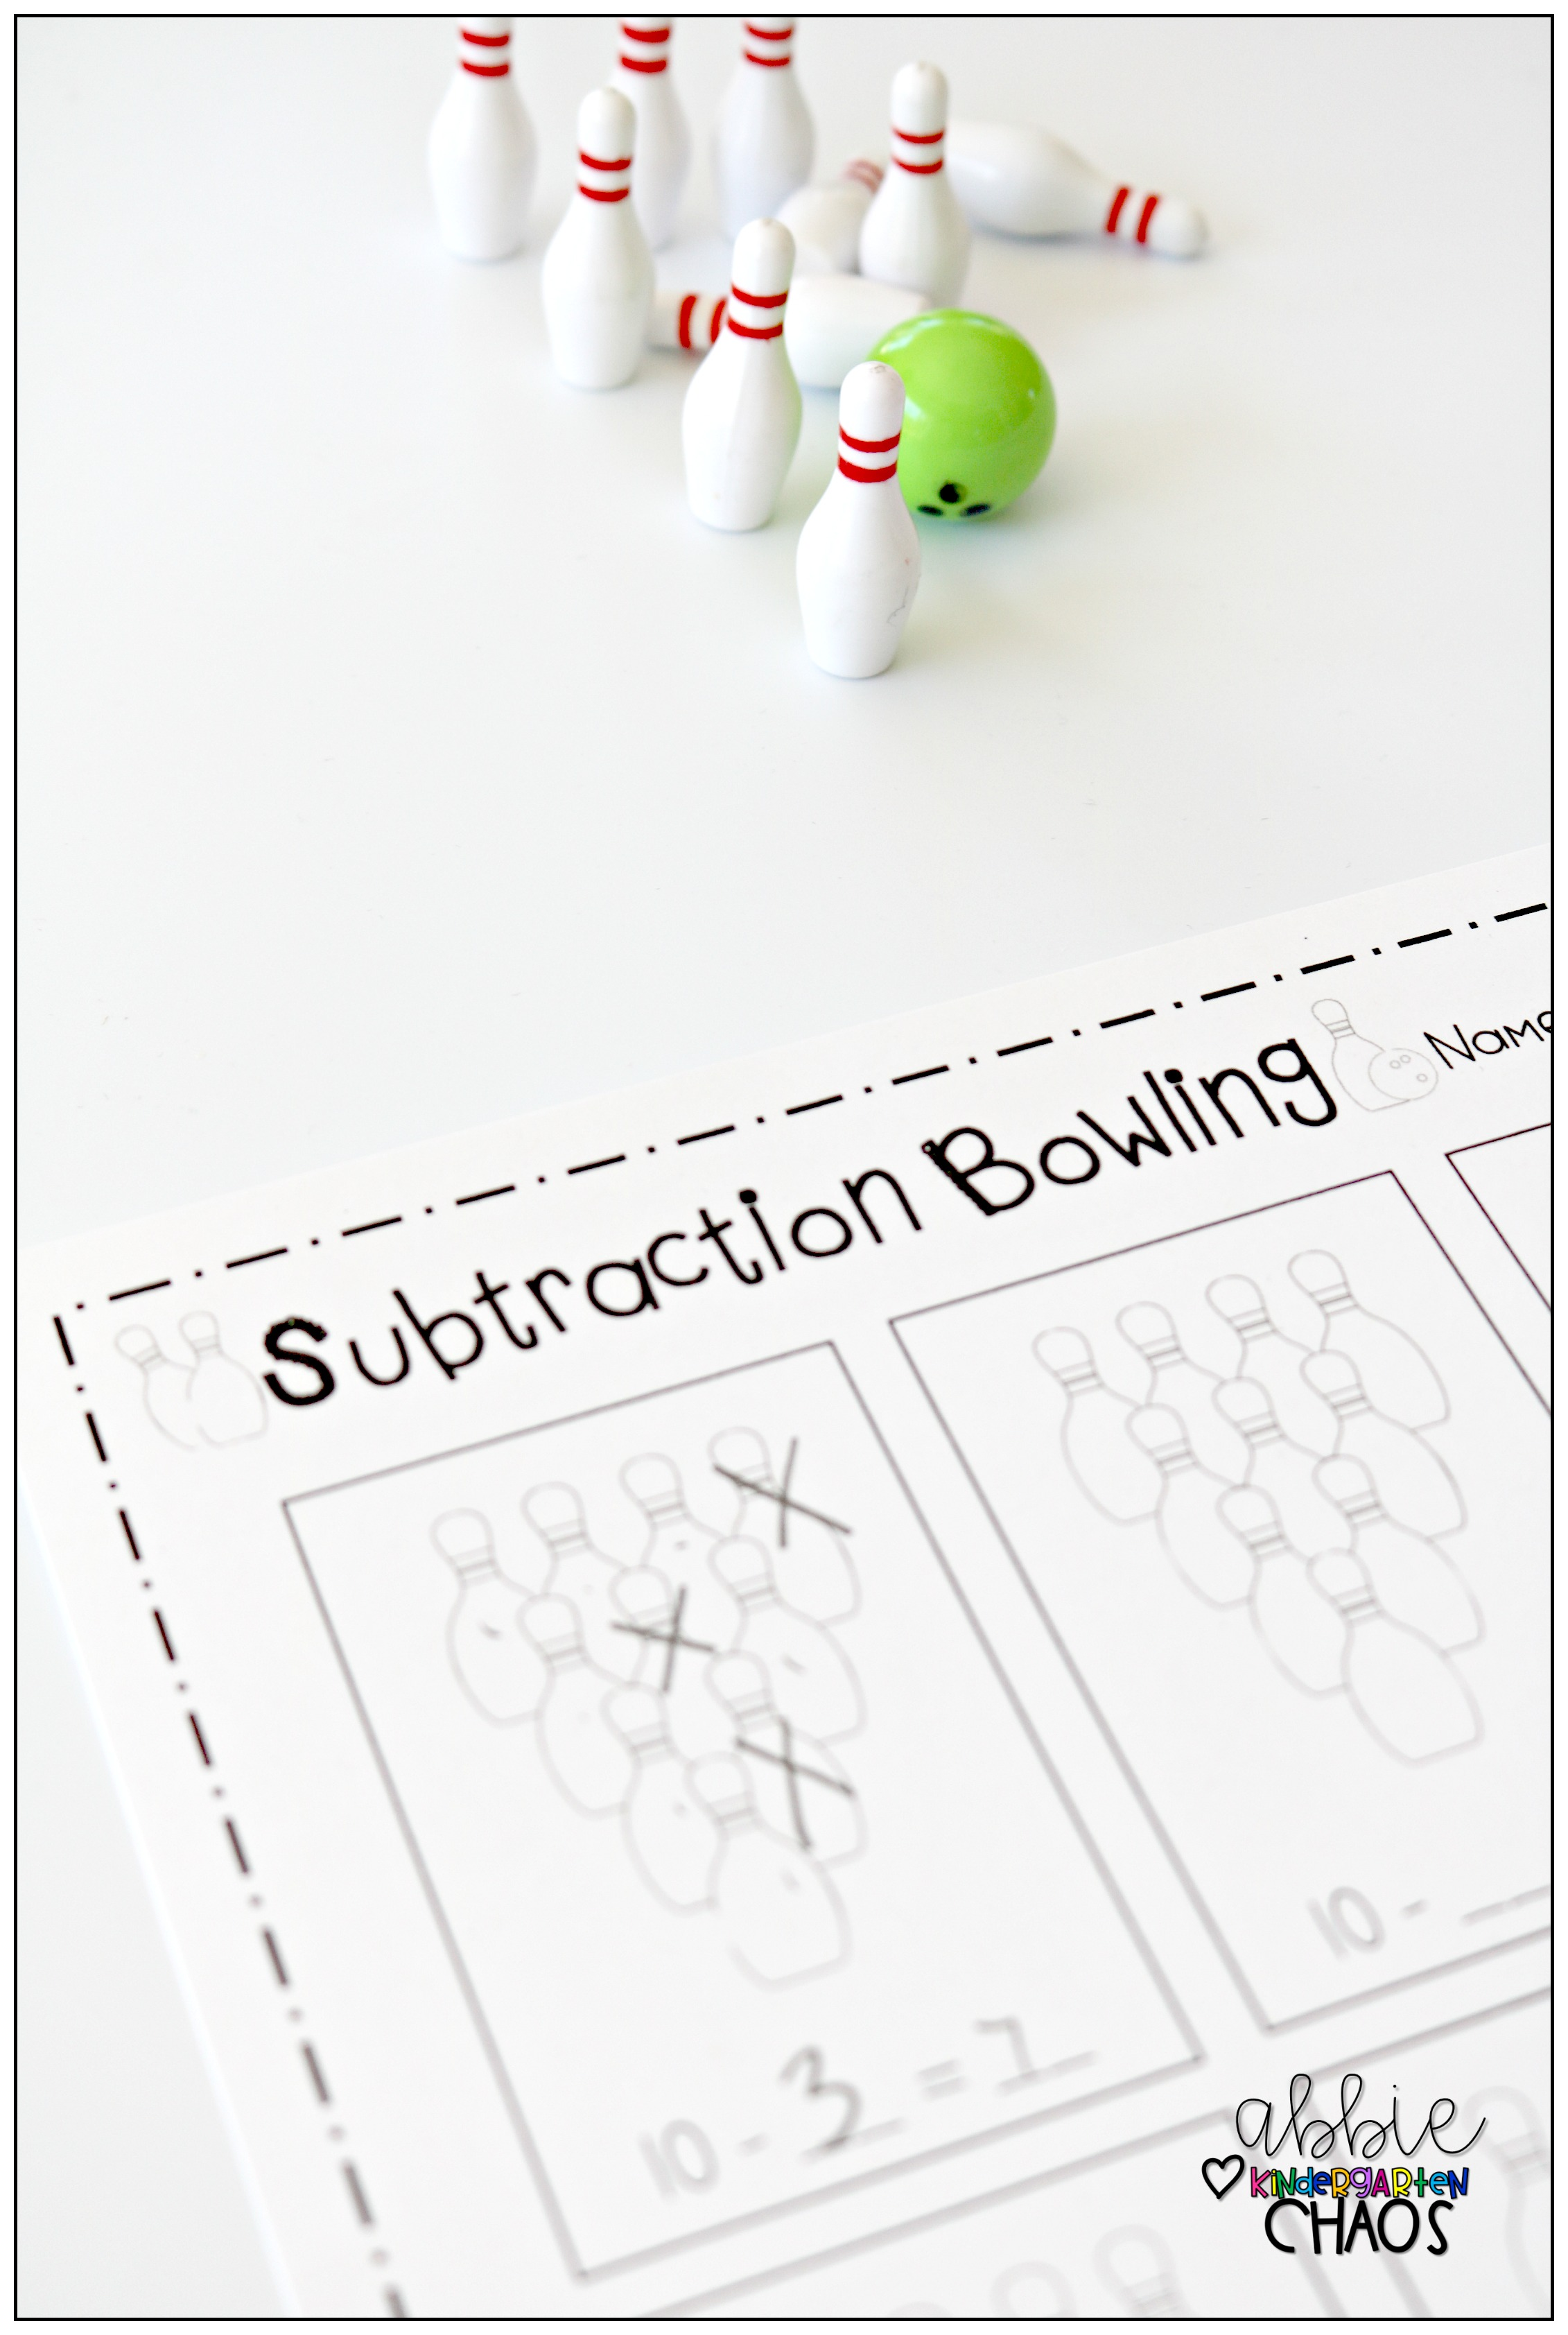 Subtraction Bowling Worksheet For Kindergarten